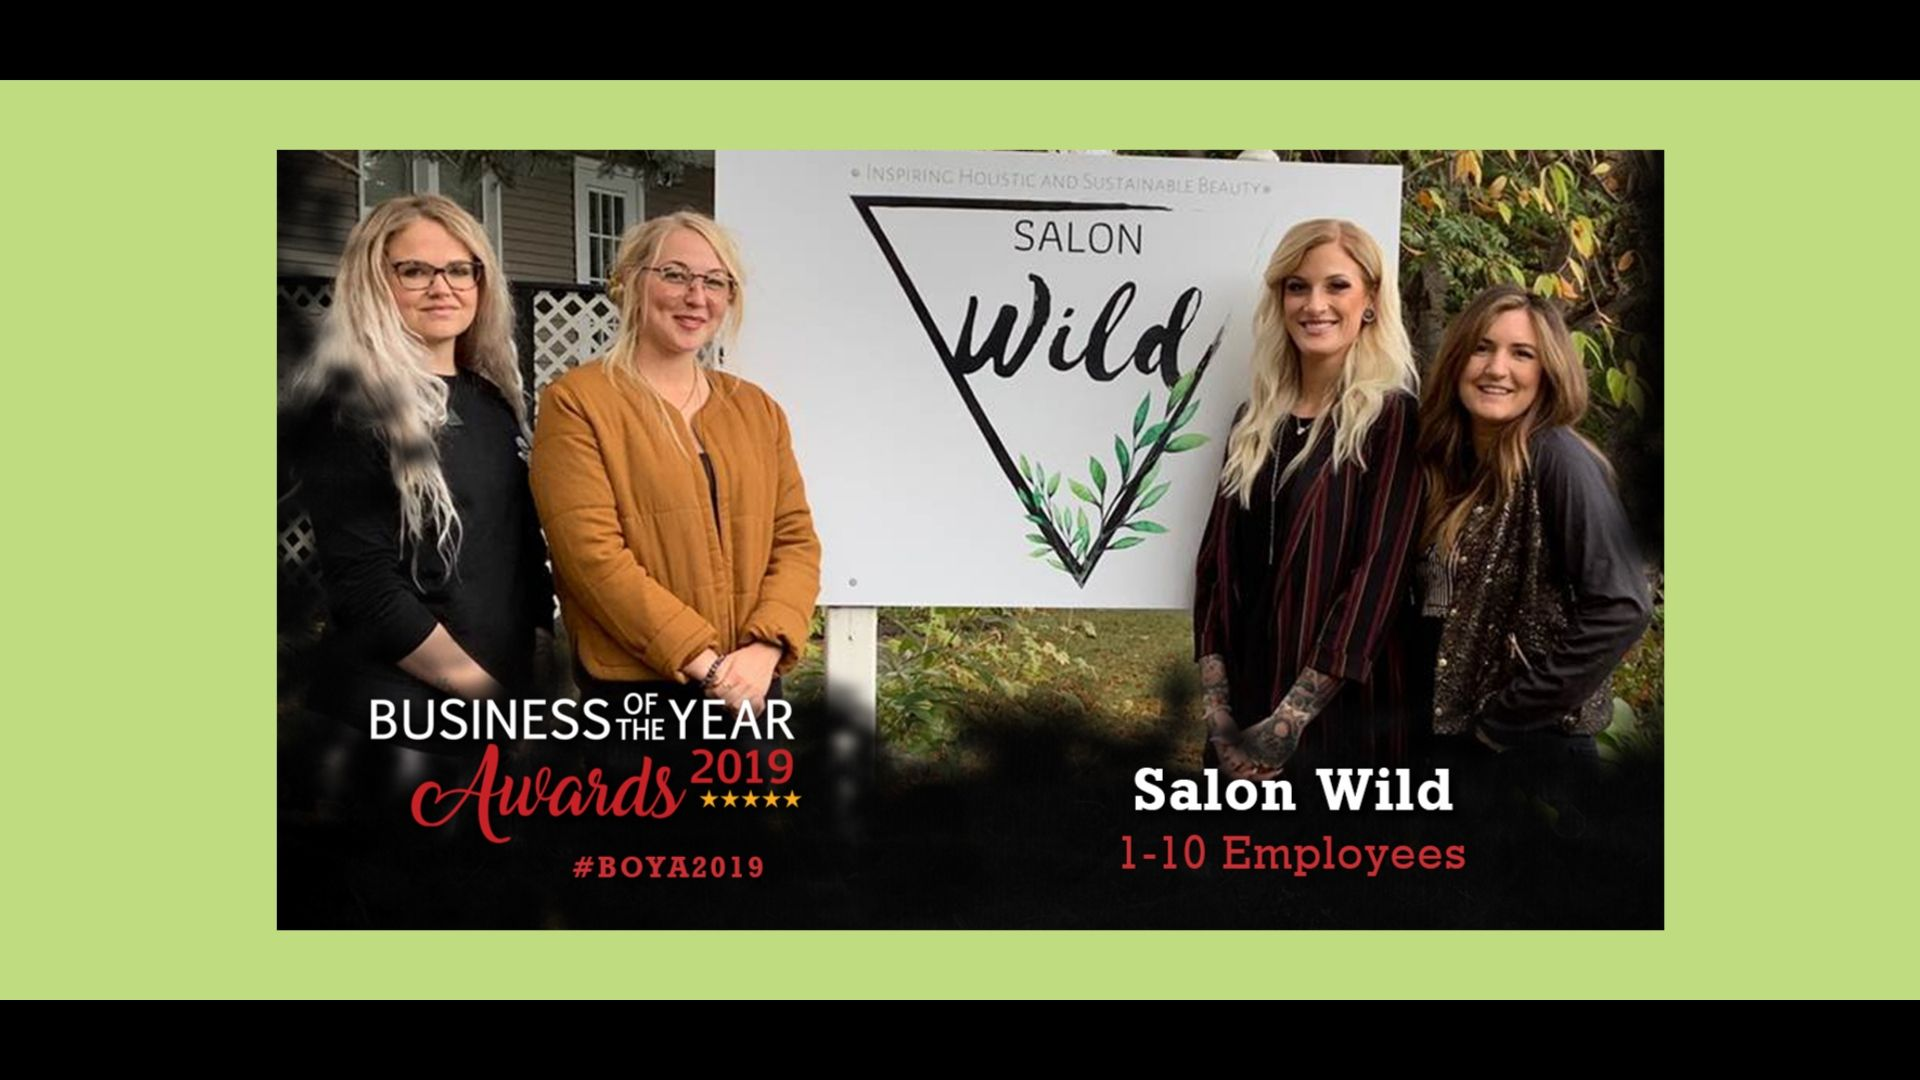 Salon Wild staff